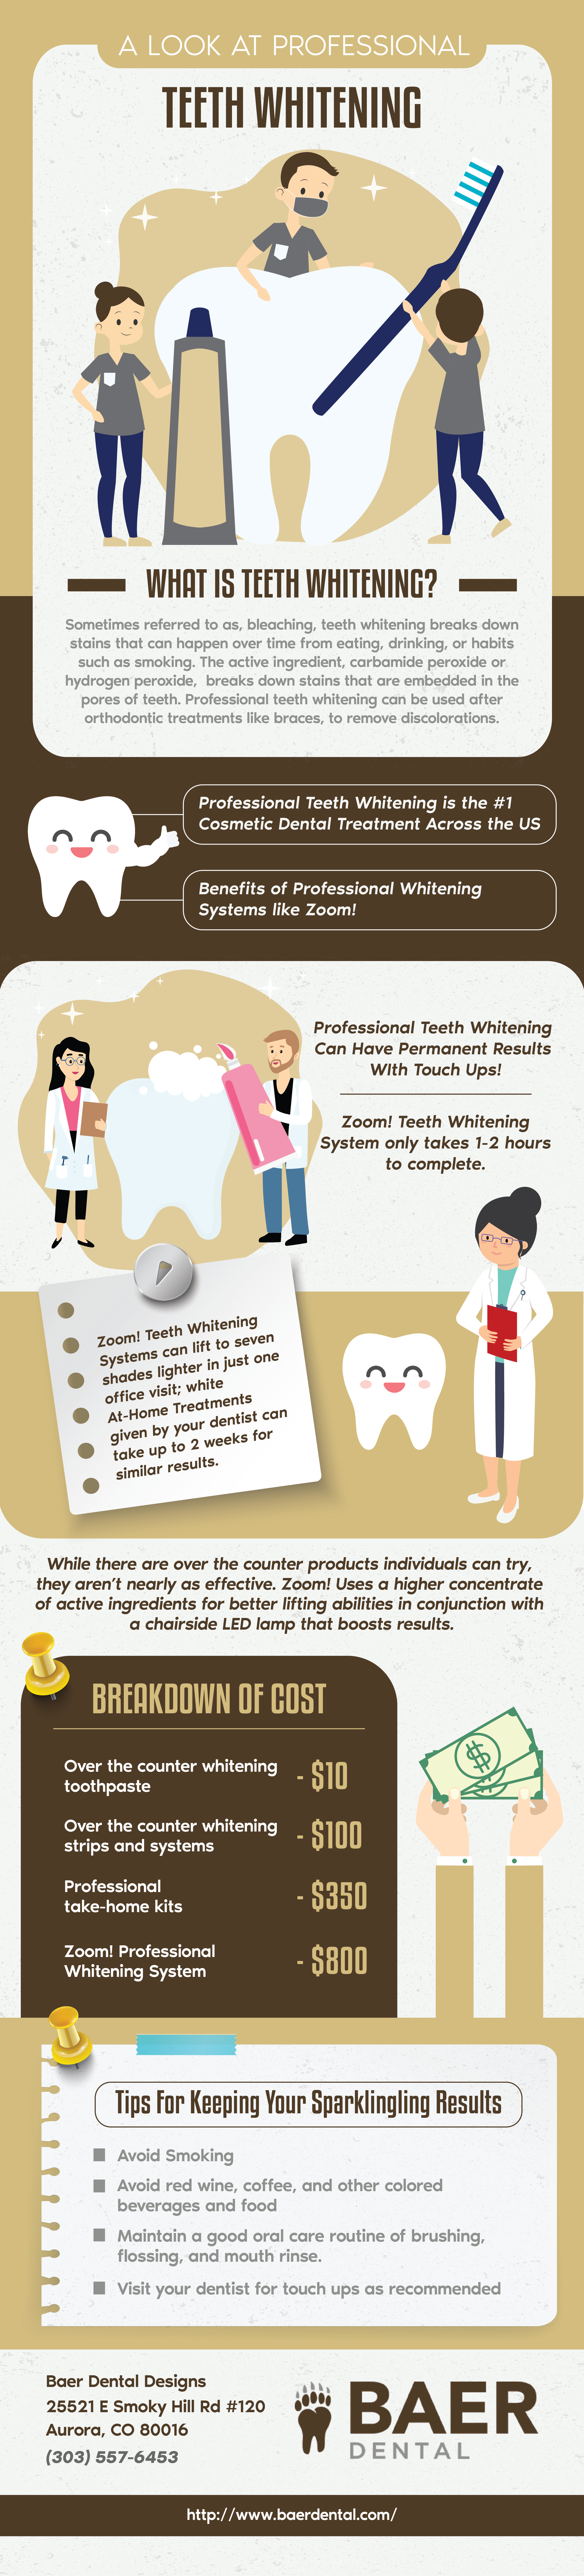 A Look At Professional Teeth Whitening